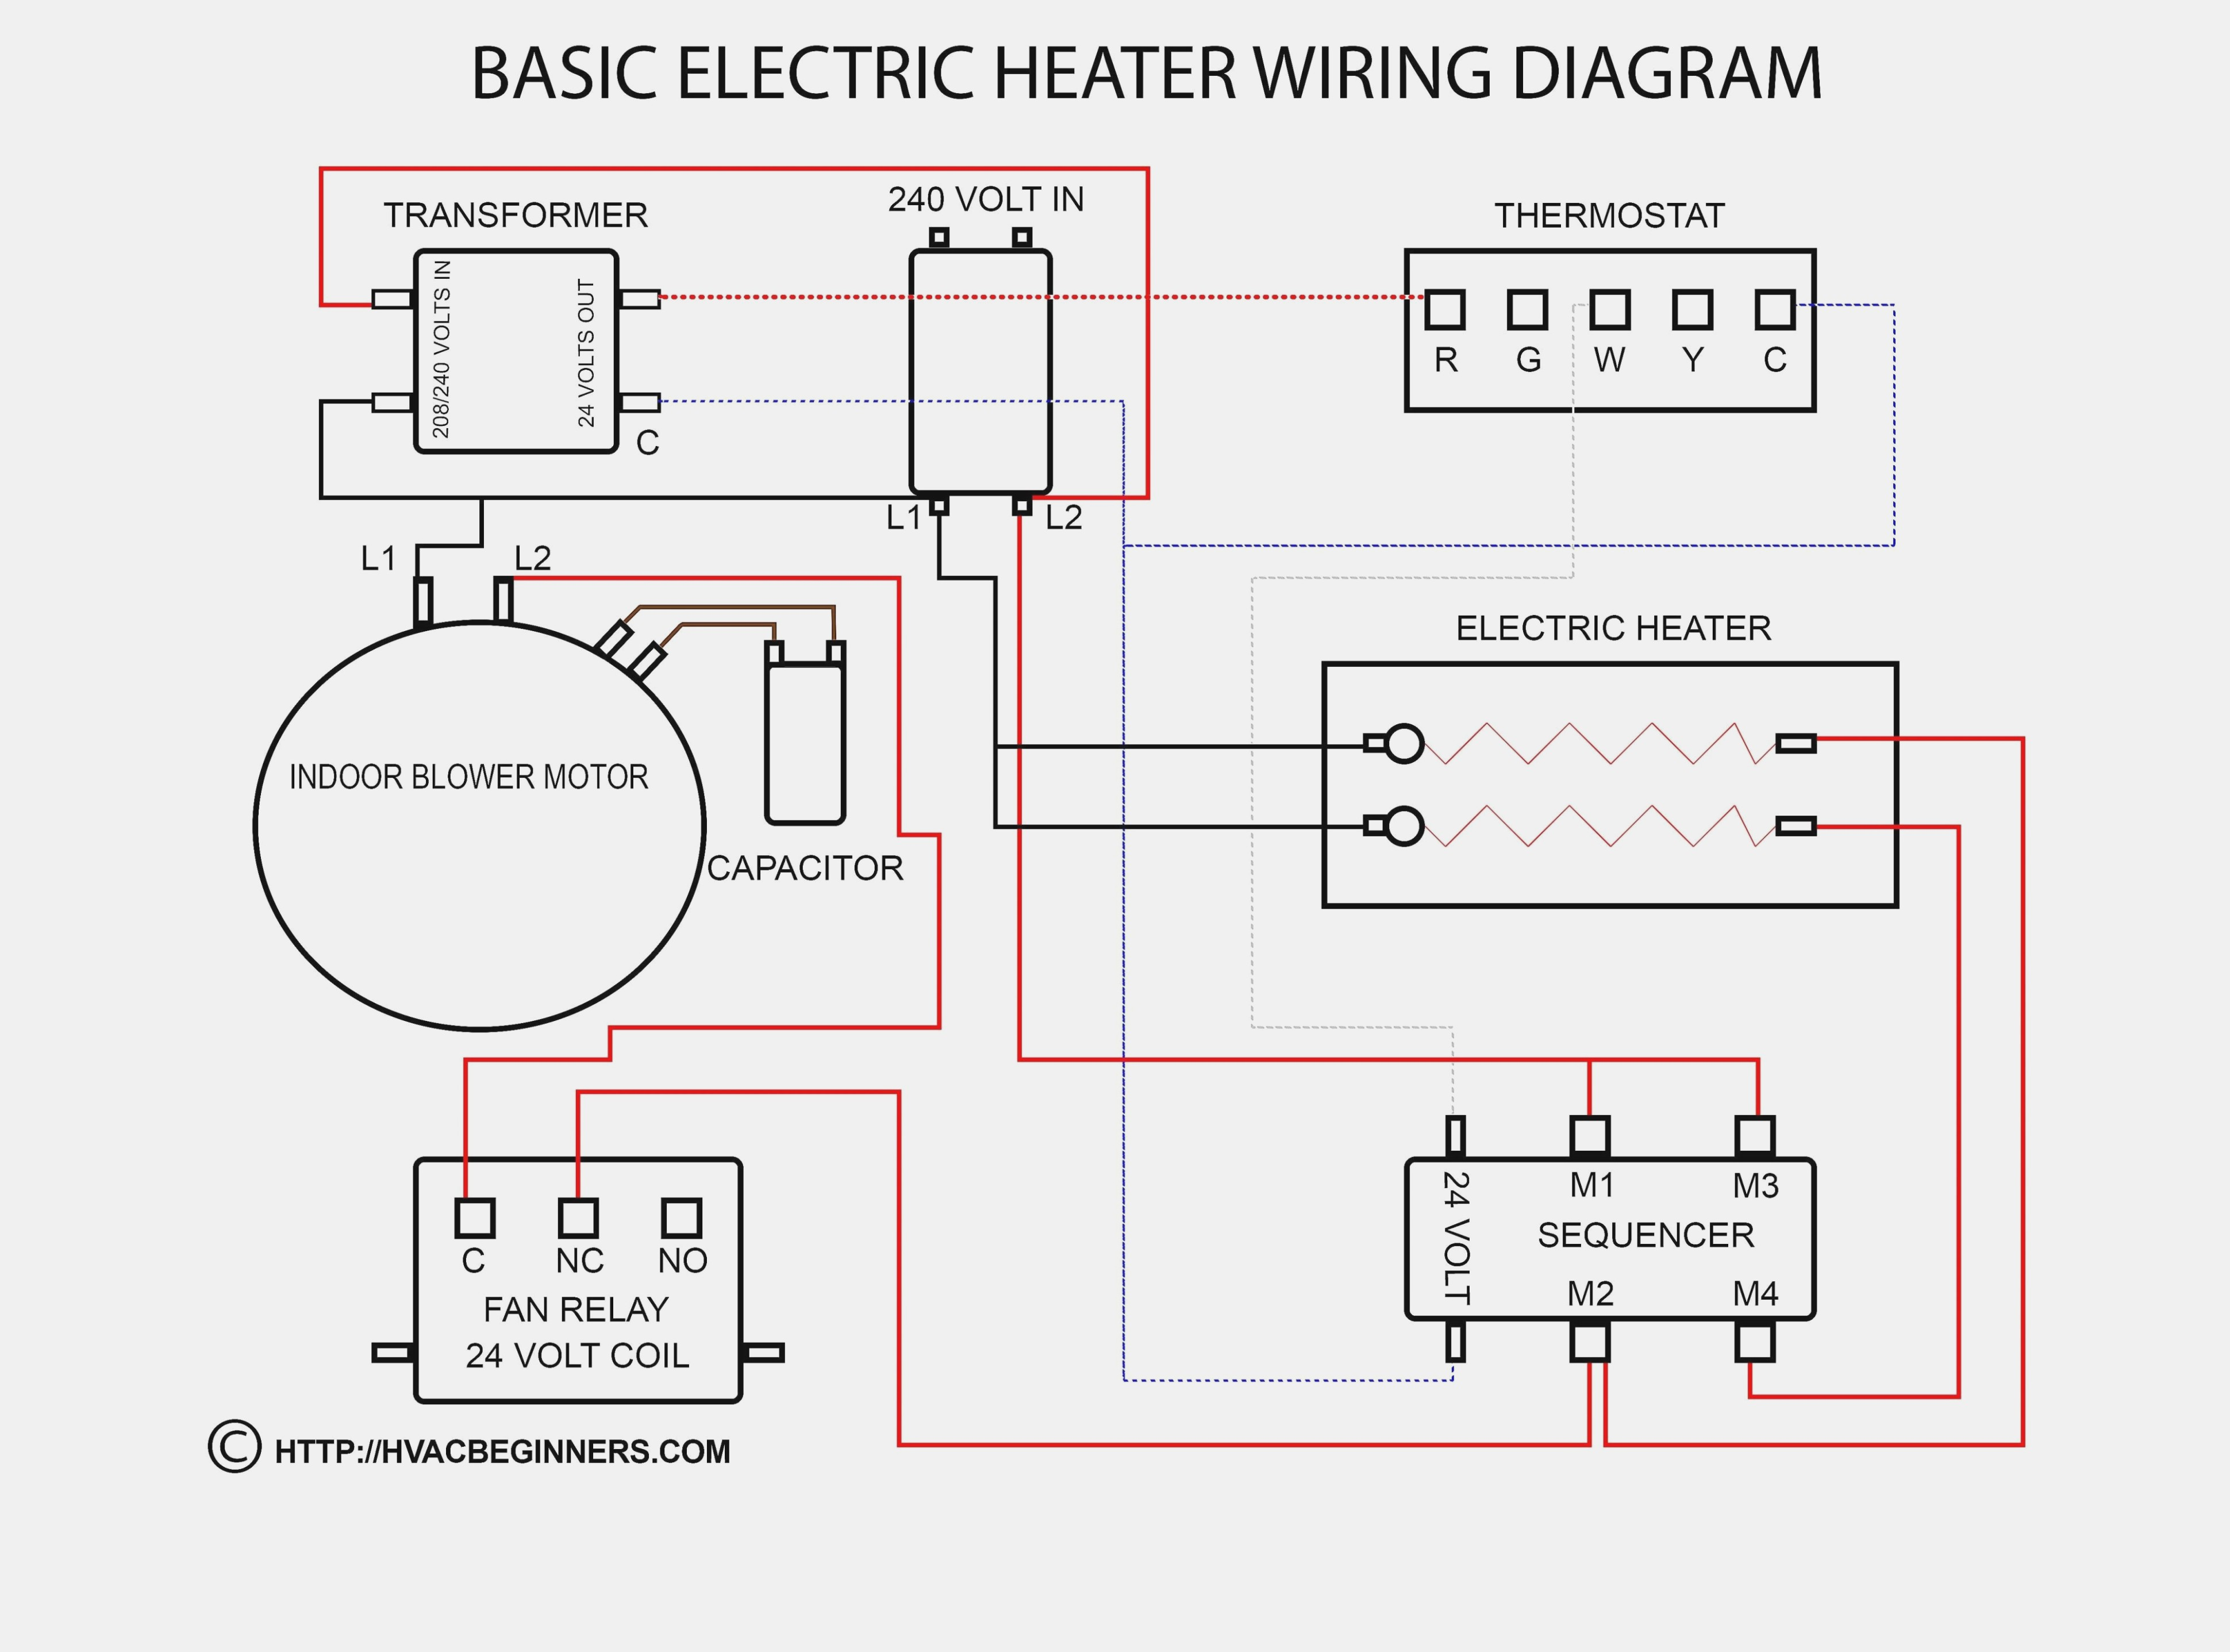 Car Electric Fan Wiring Diagram Wiring A Electric Space Heater Schema Wiring Diagram Of Car Electric Fan Wiring Diagram Wiring Diagrams 1998 Auto Car Wiring Diagram toolbox